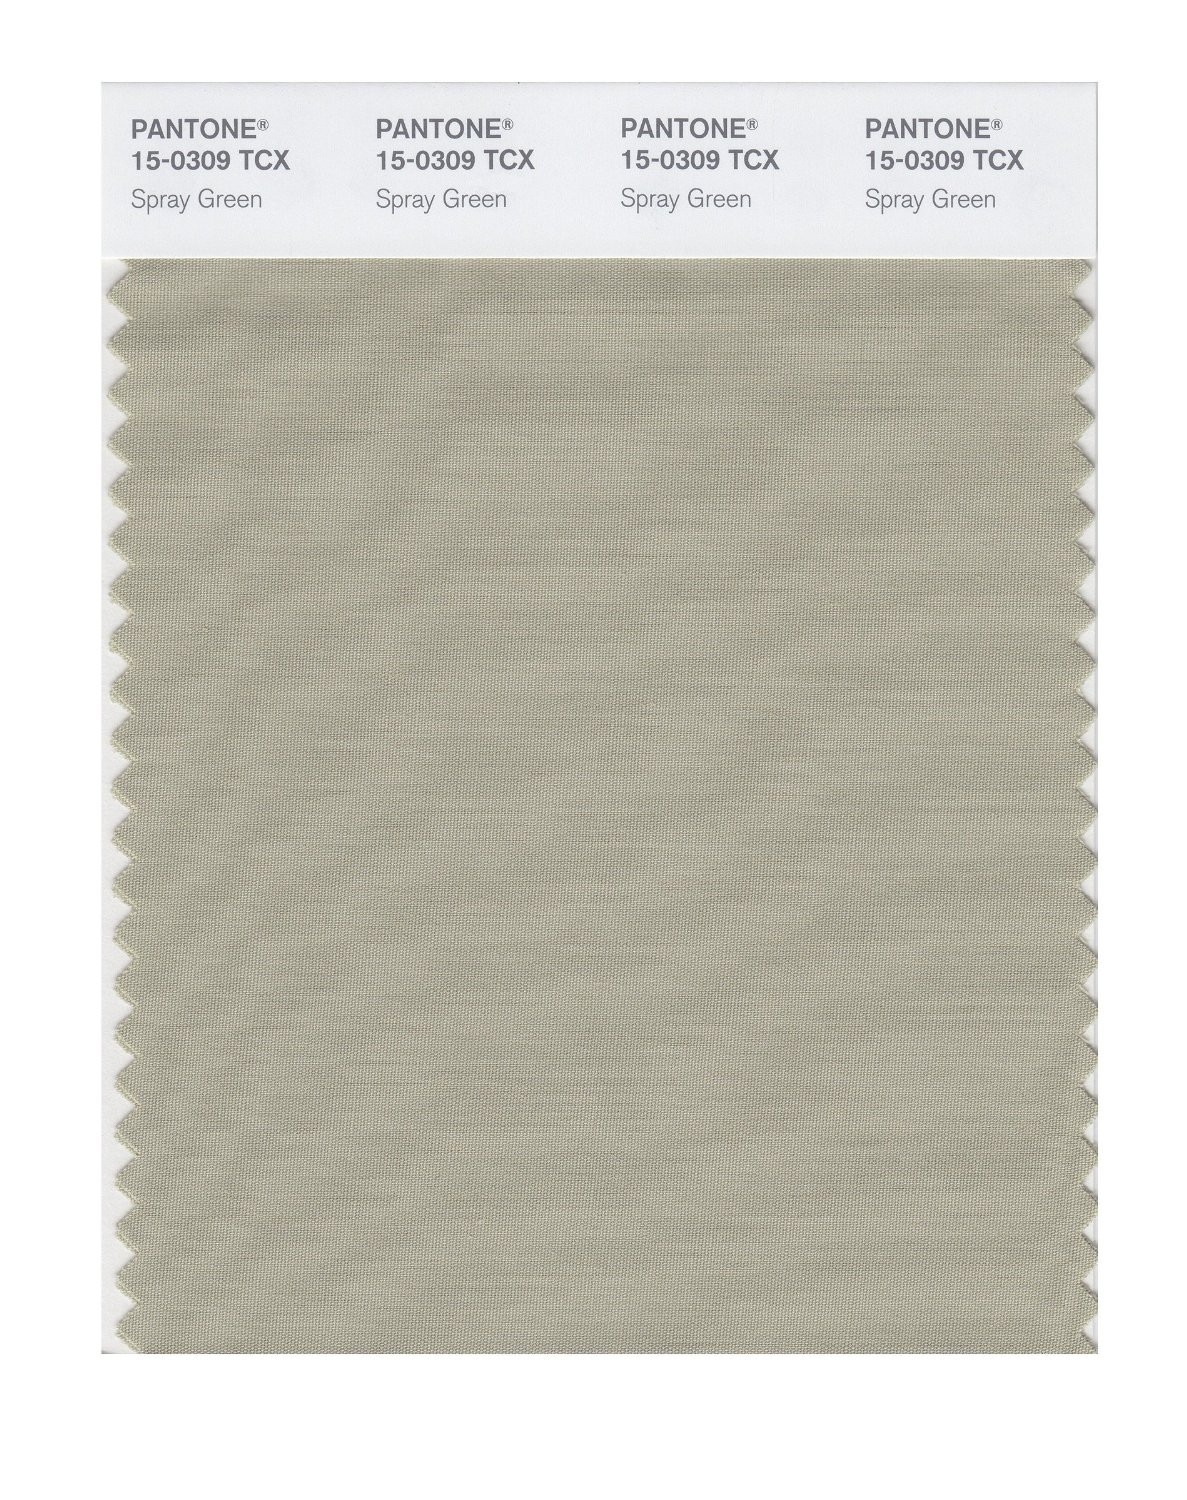 Pantone Smart Swatch 15-0309 Spray Green